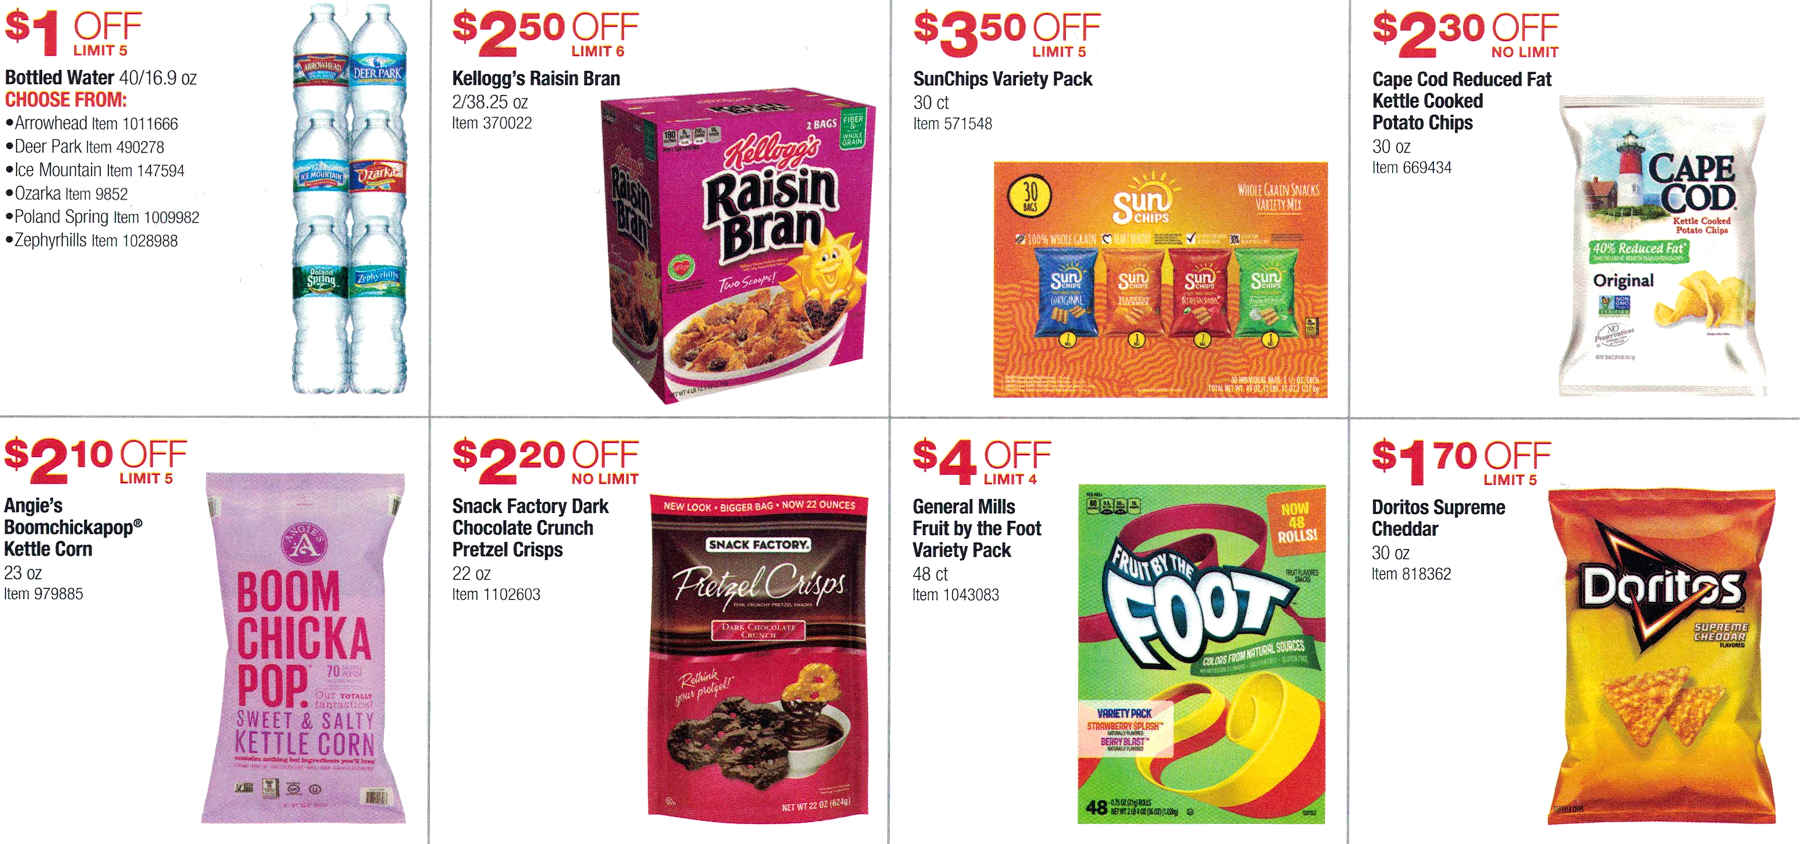 February 2017 Costco Coupon Book Page 6